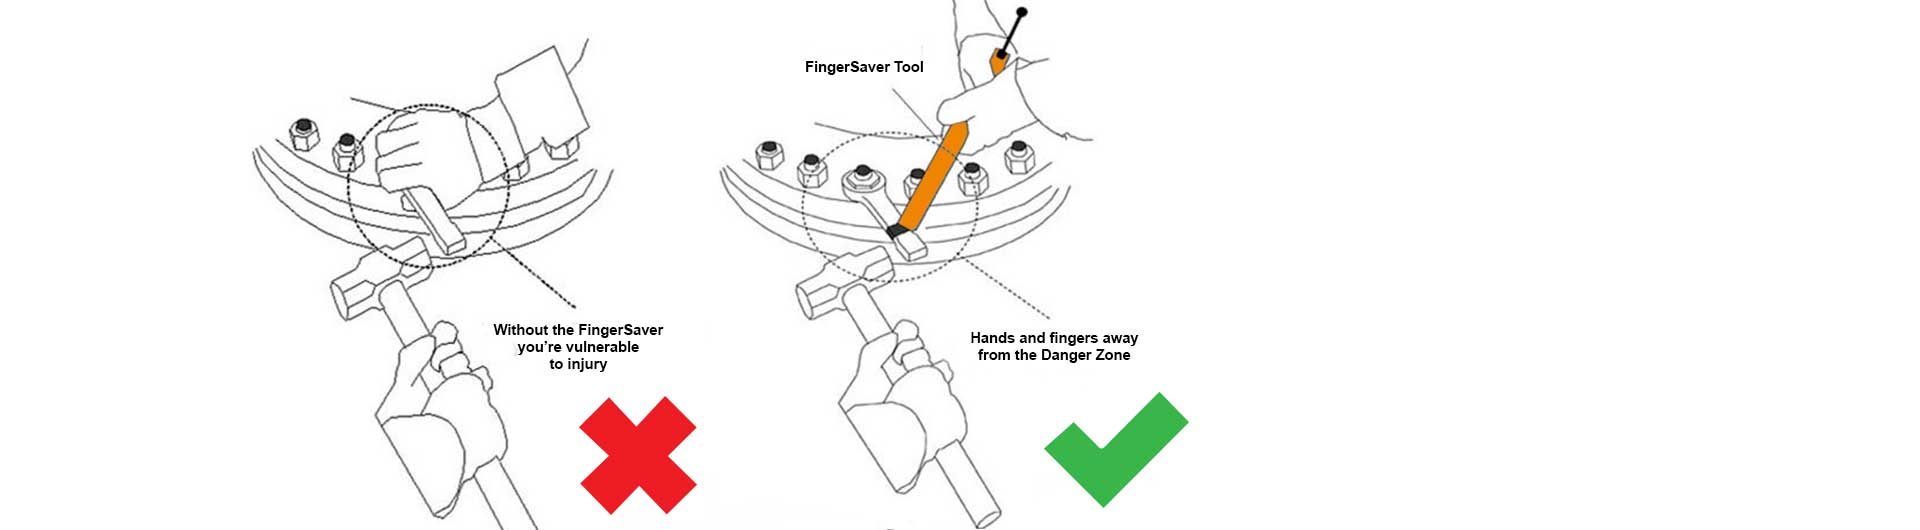 diagram explaining how and why to use the fingersaver